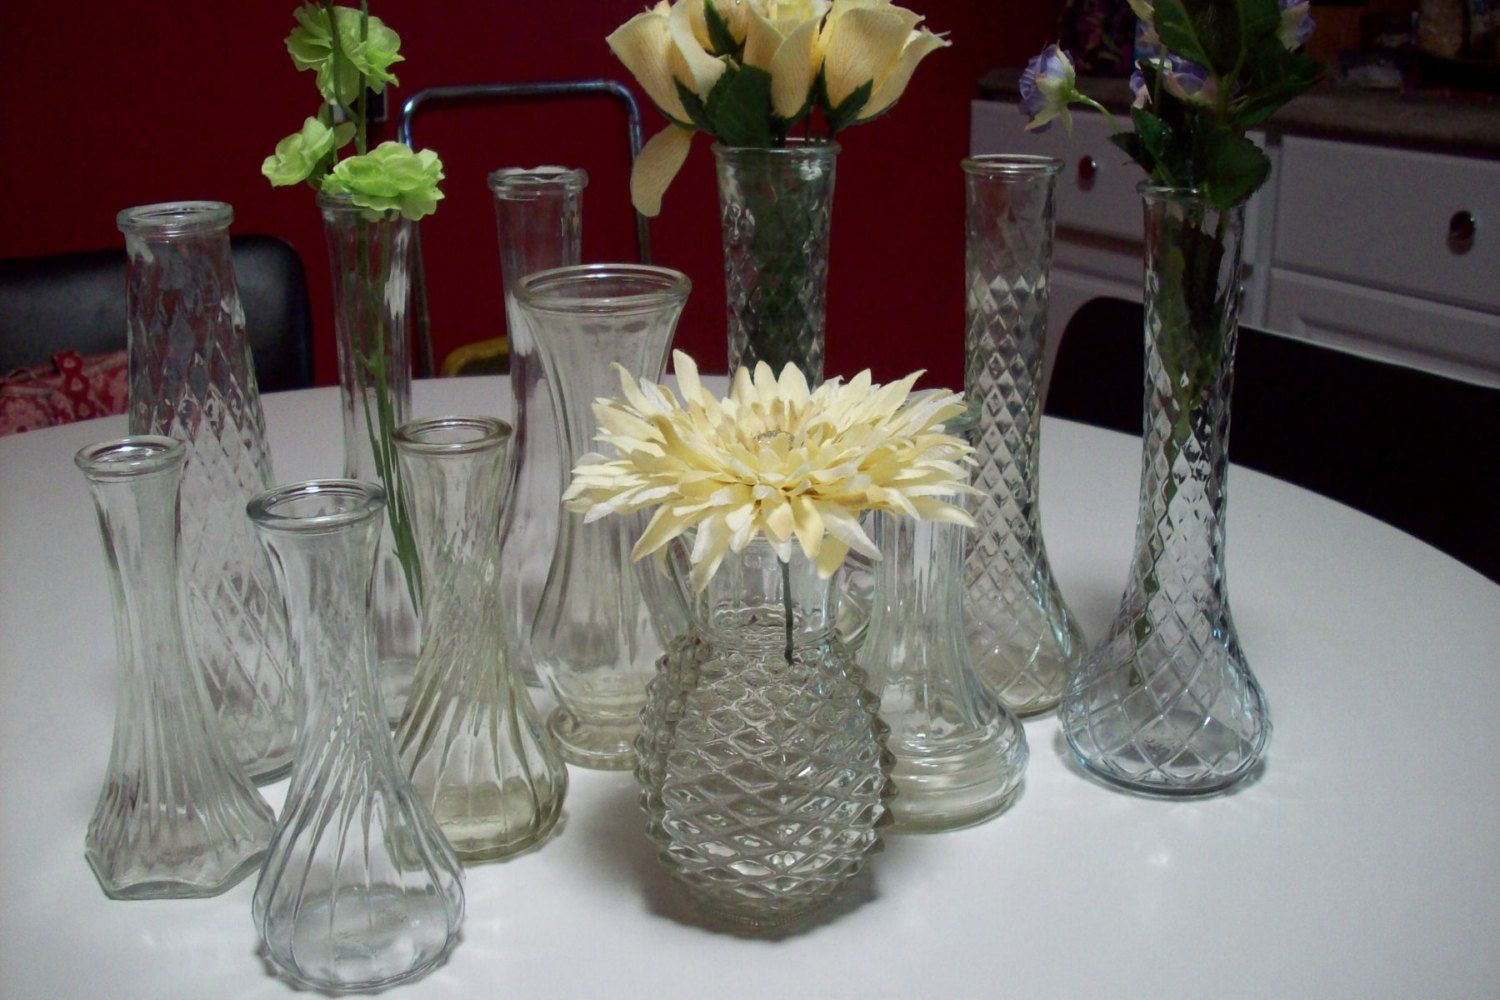 Clear glass vase set vintage bud vase collection set of 12 clear glass vase set vintage bud vase collection set of 12 wedding centerpiece table decor anchor hocking large hobnail vase by upcycledcottag reviewsmspy